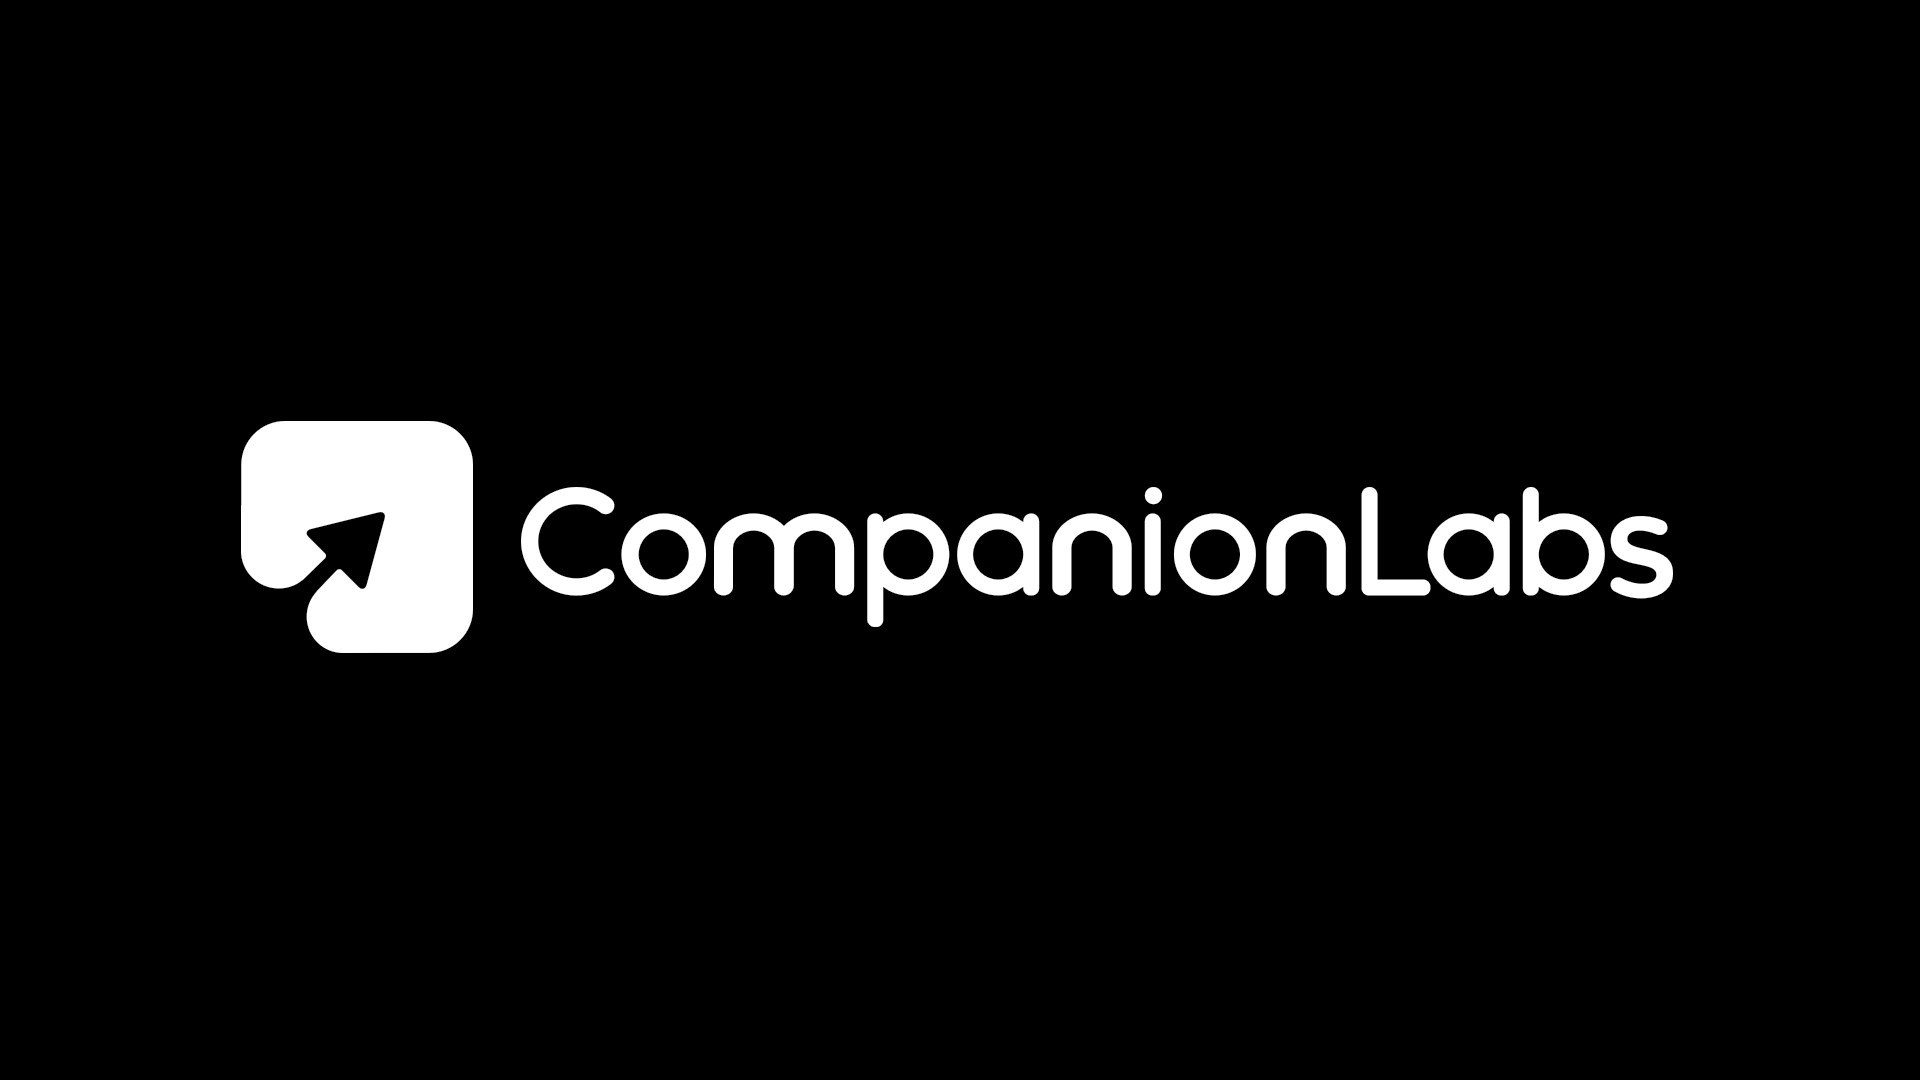 Nine-month-old Akron software company CompanionLabs is wrapping up 2017 with a new product launch, and $500k in seed funding to accelerate its rapid growth.